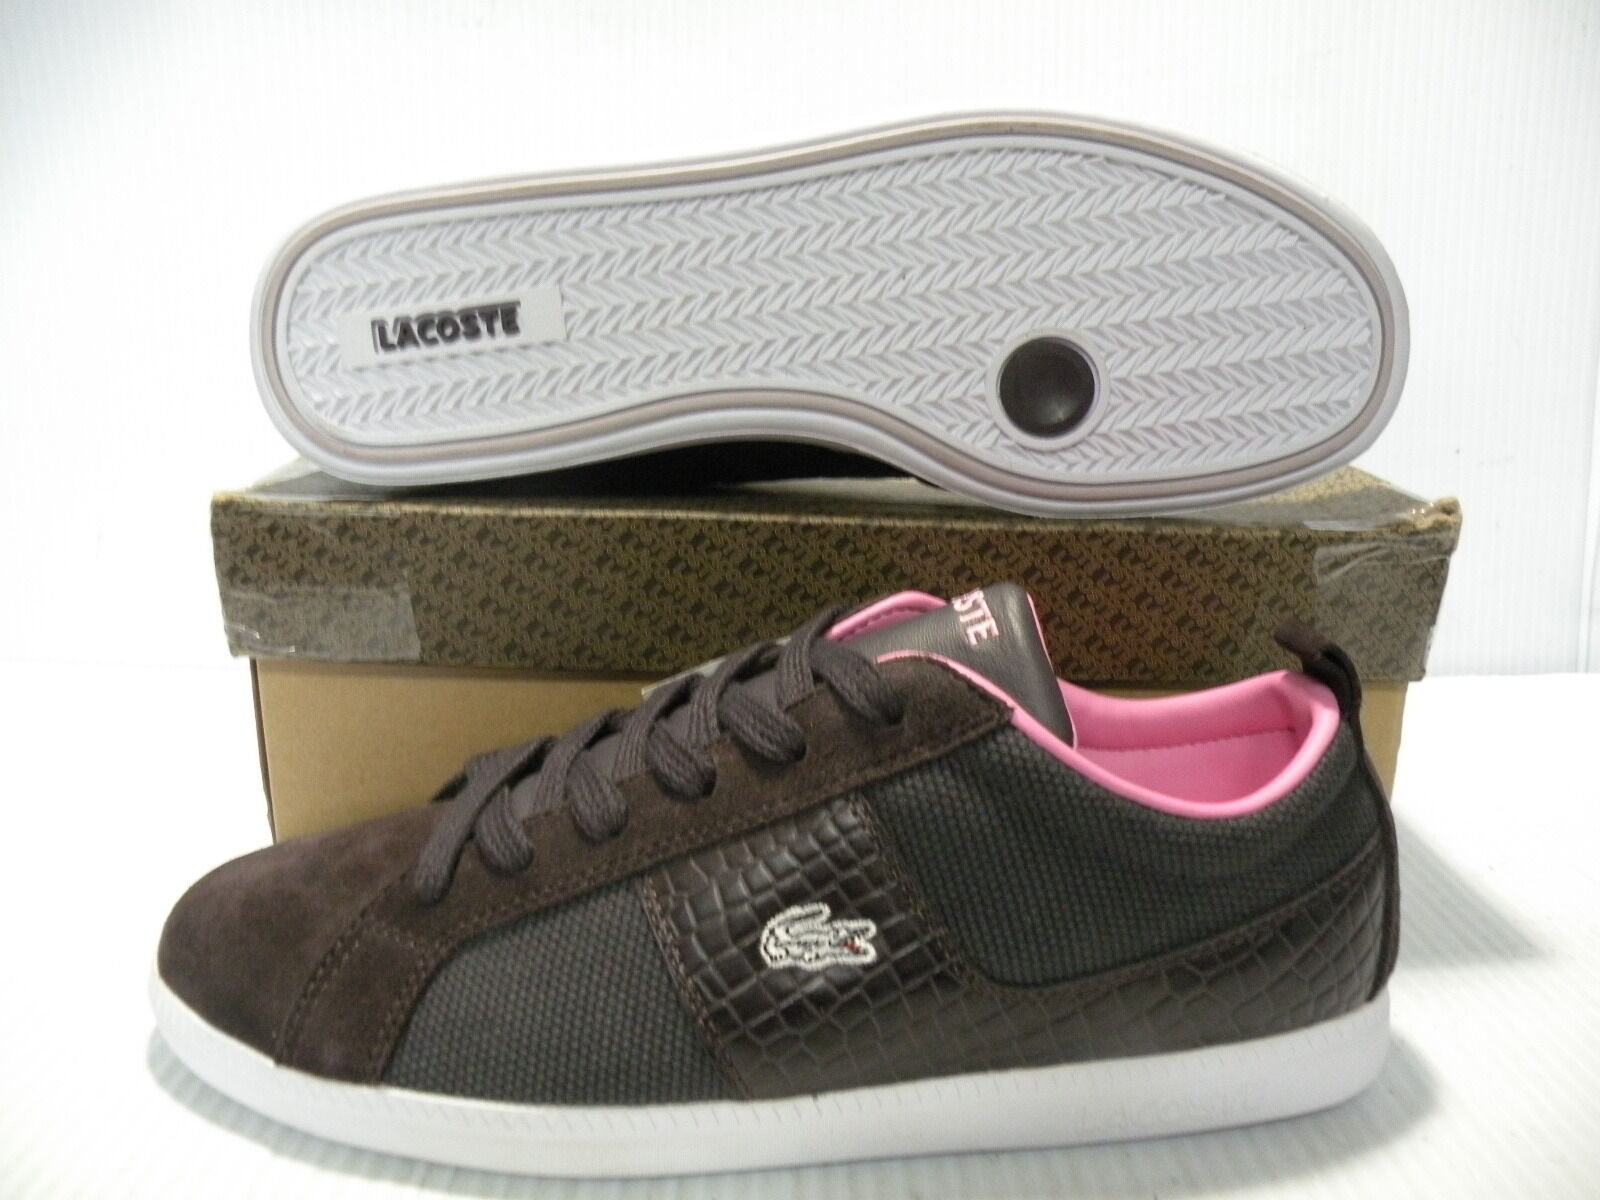 LACOSTE OBSERVE CROC CANVAS SNEAKERS Donna Scarpe BROWN 714STW6875-K55 SZ 10 NEW